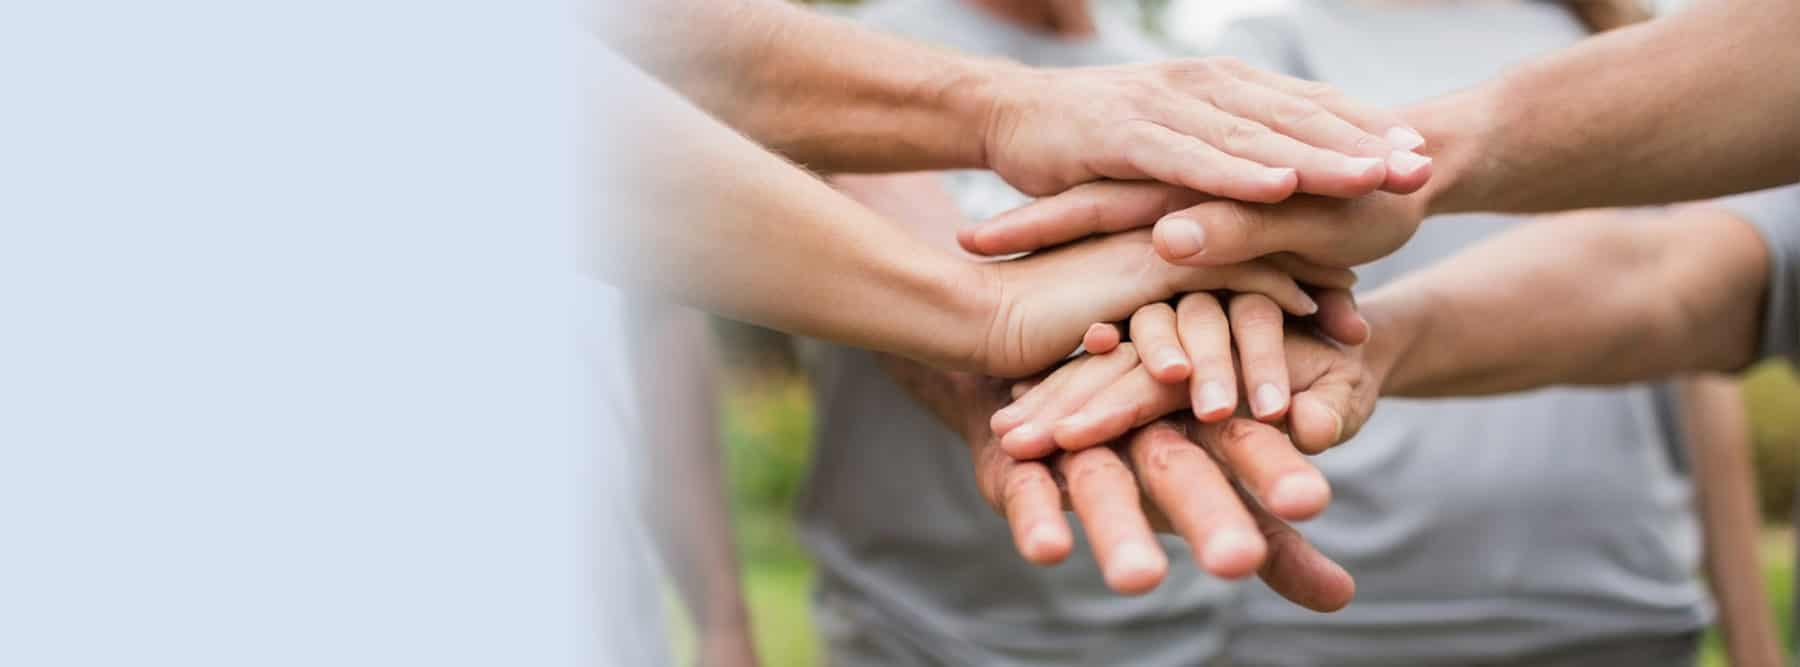 Support by donation - people holding hands